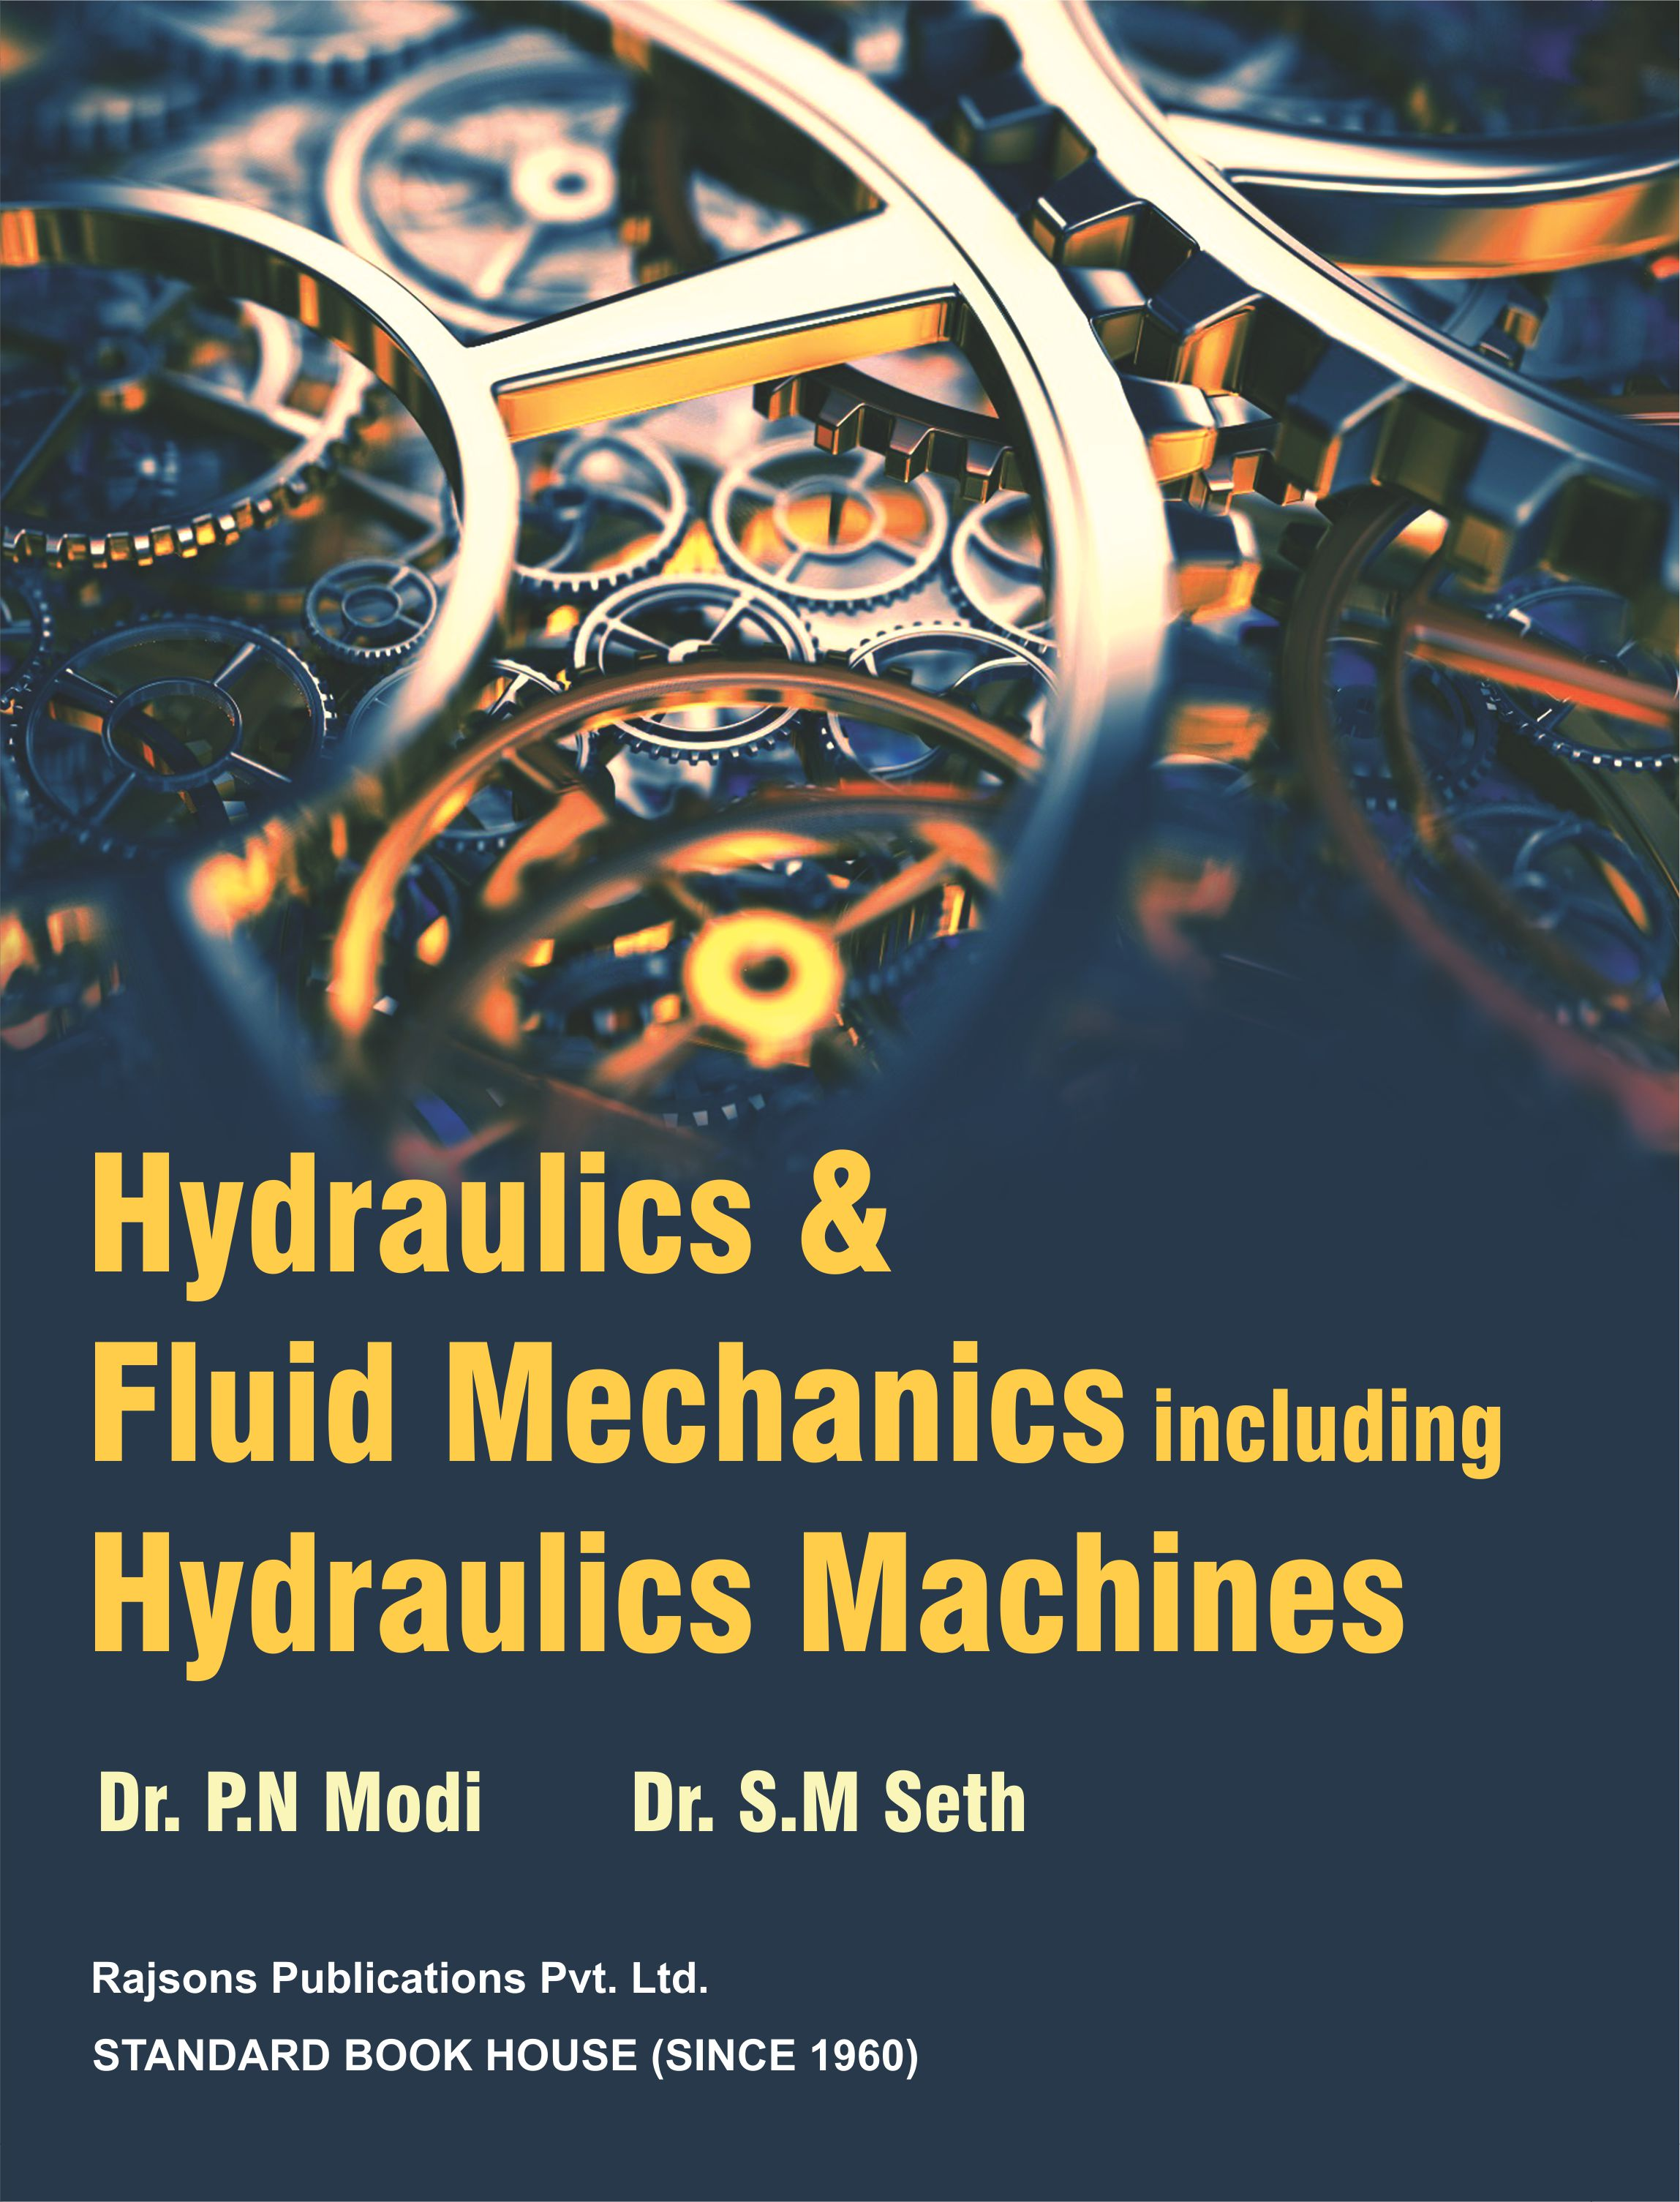 Hydraulics & Fluid Mechanics